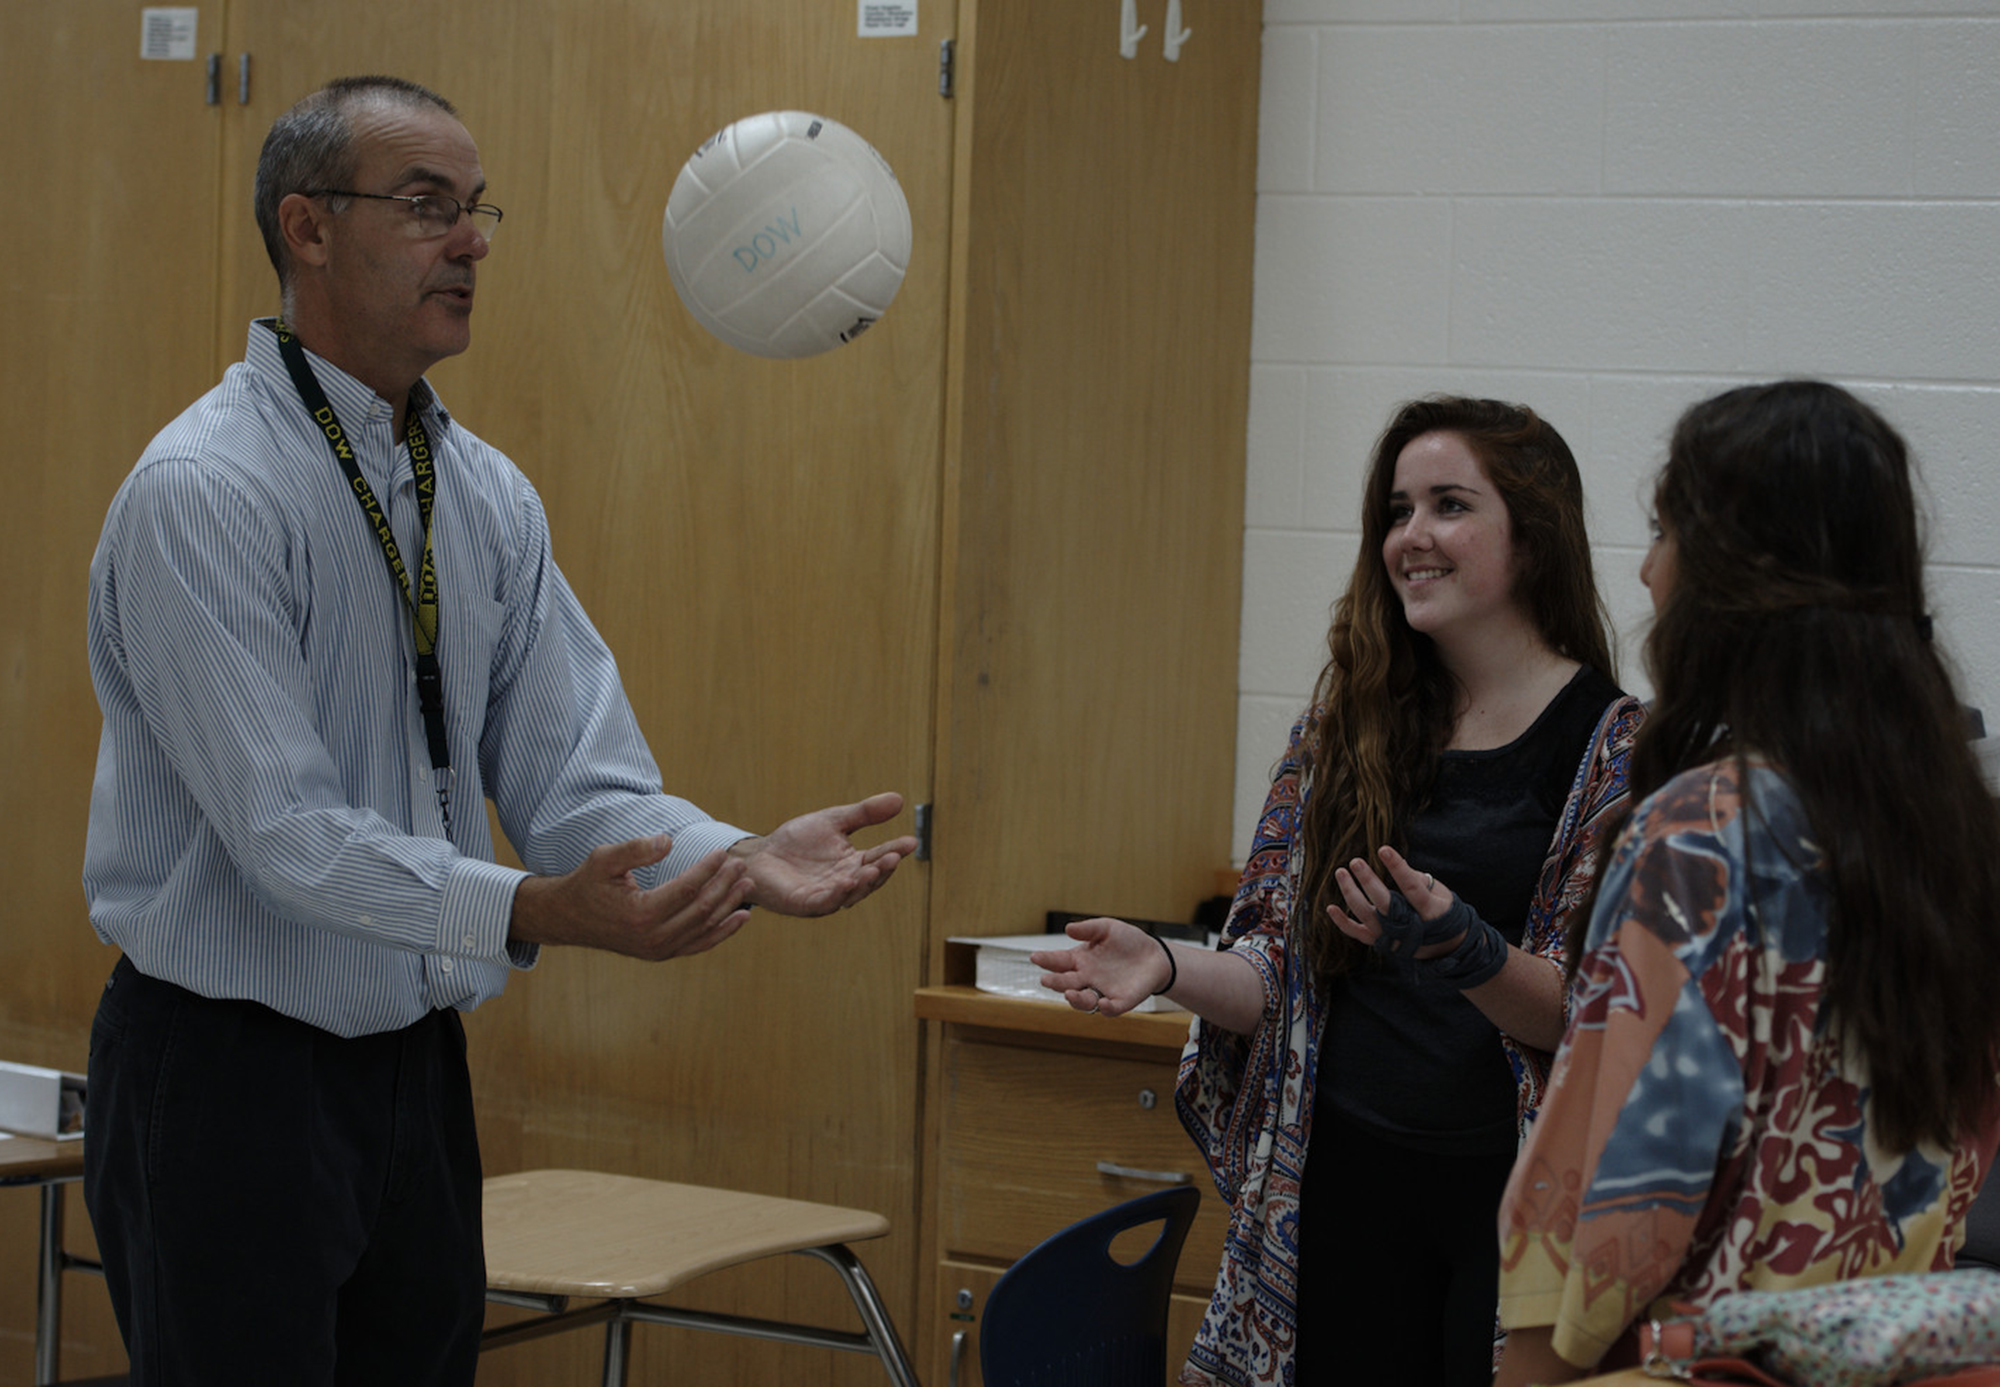 Dow High teacher Thomas McNamara (left) uses a volleyball and motion sensor to map the kinematics of tossing the ball into the air as students Ellen Lavigne (center) and Stephanie Carras (right) observe. A similar process is used to map the kinematics of the solar cars. Saginaw Valley State University photo.